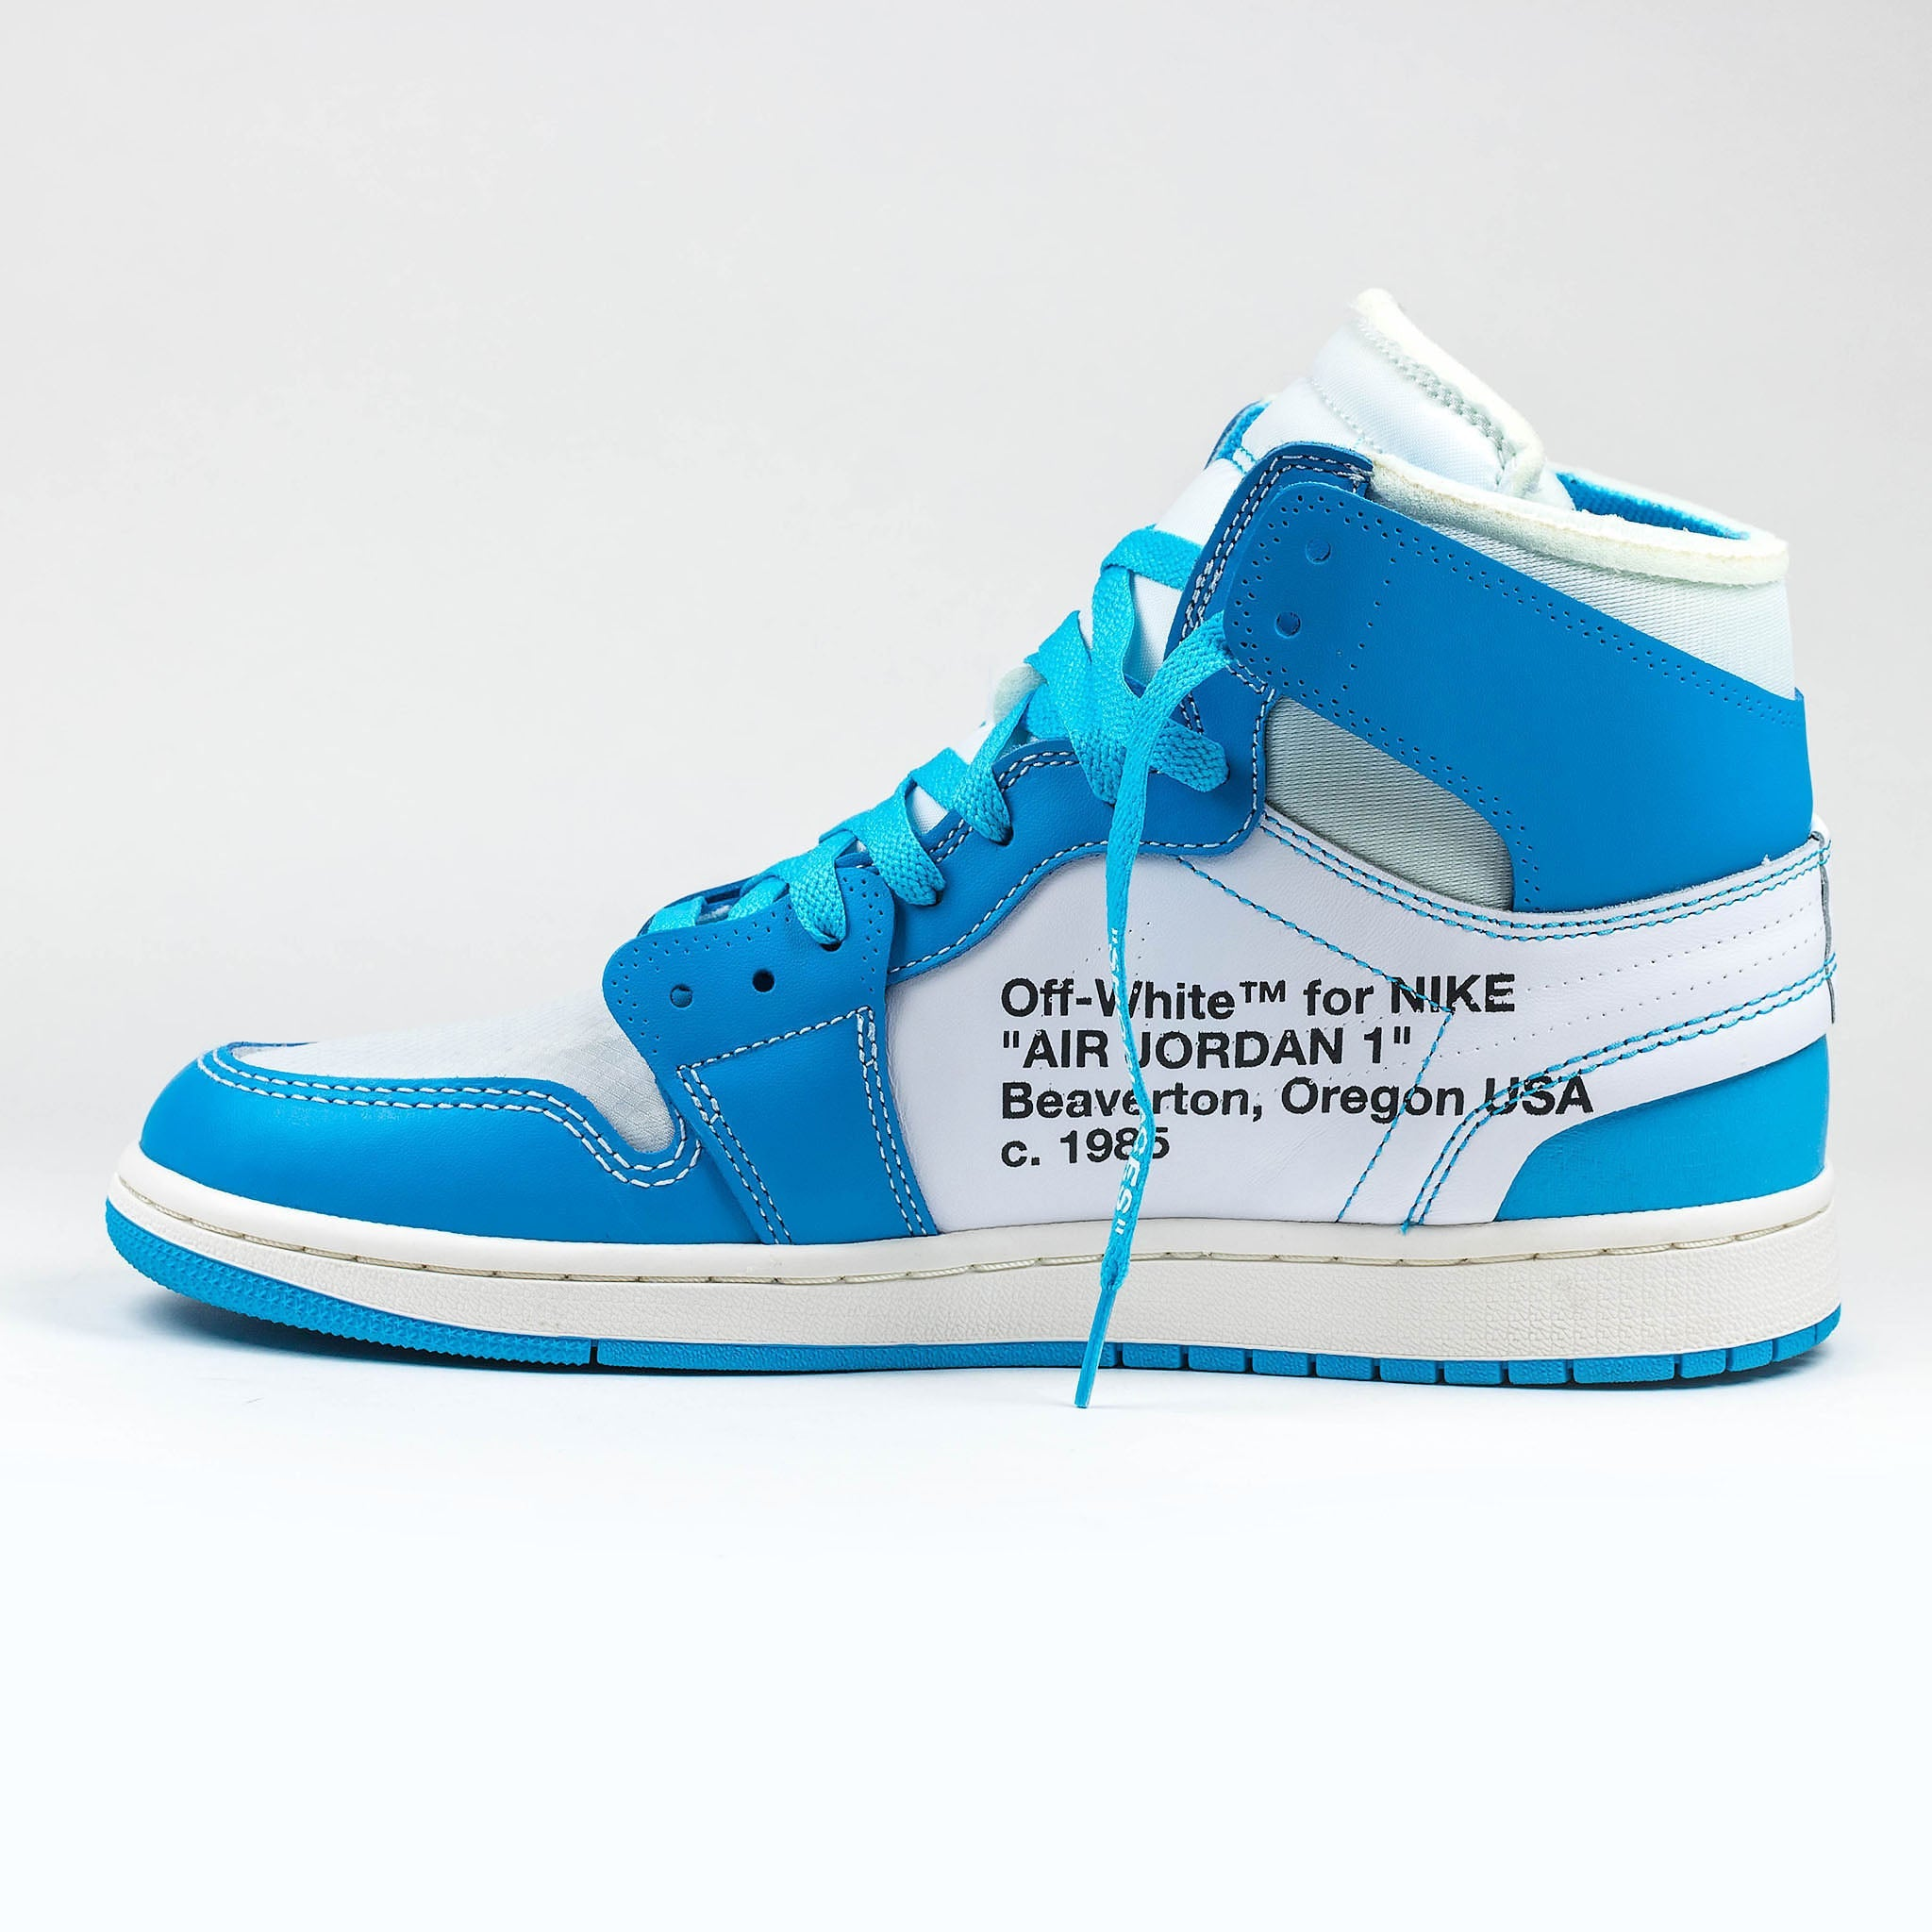 c83e5cf670b Nike x Off White Air Jordan 1 UNC University Blue – Crepslocker